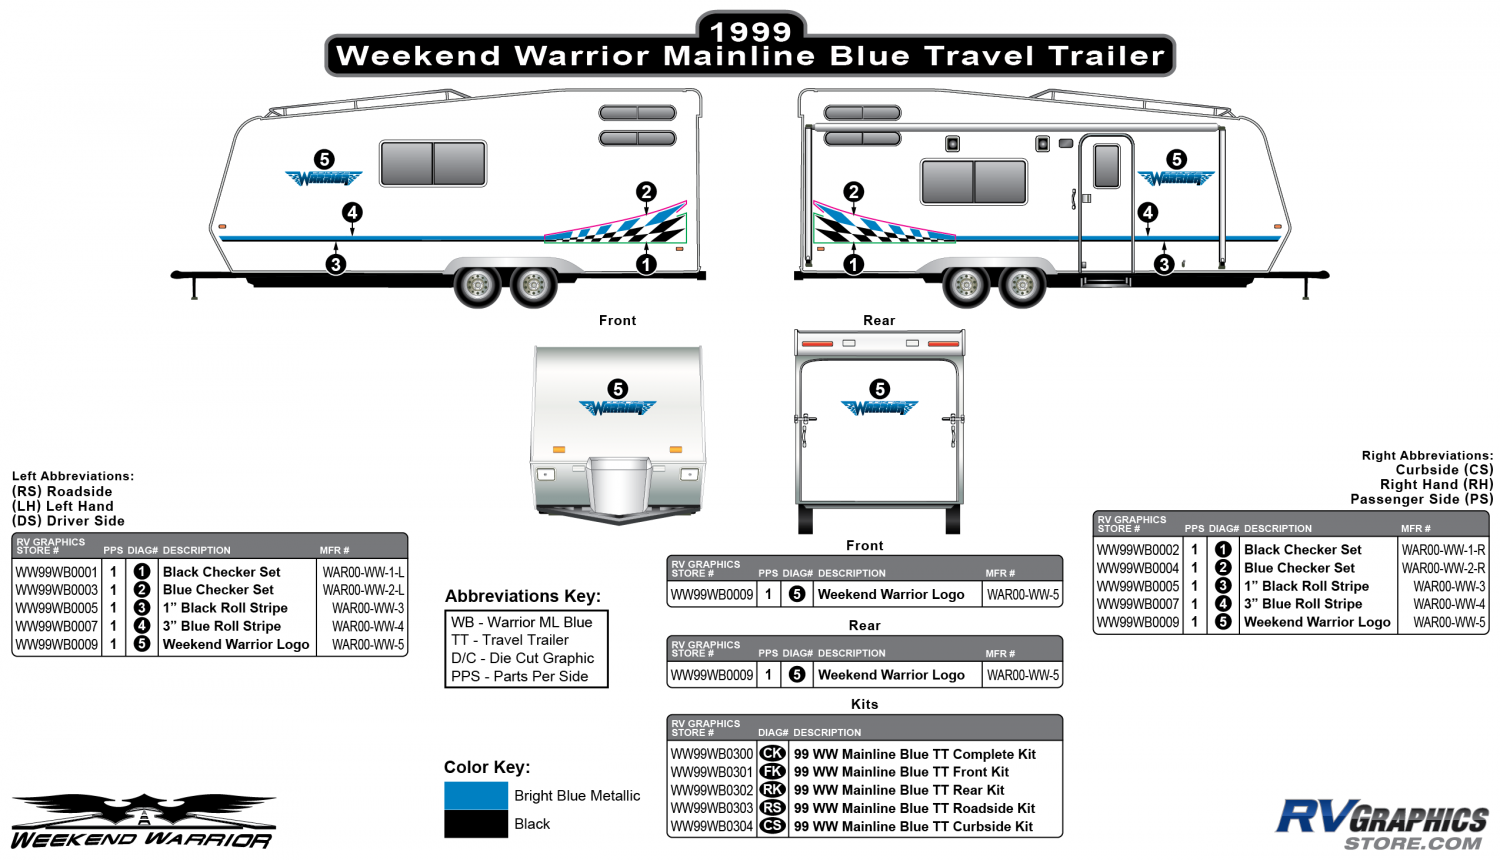 Weekend Warrior Mainline - 1999-2000 Weekend Warrior TT-Travel Trailer